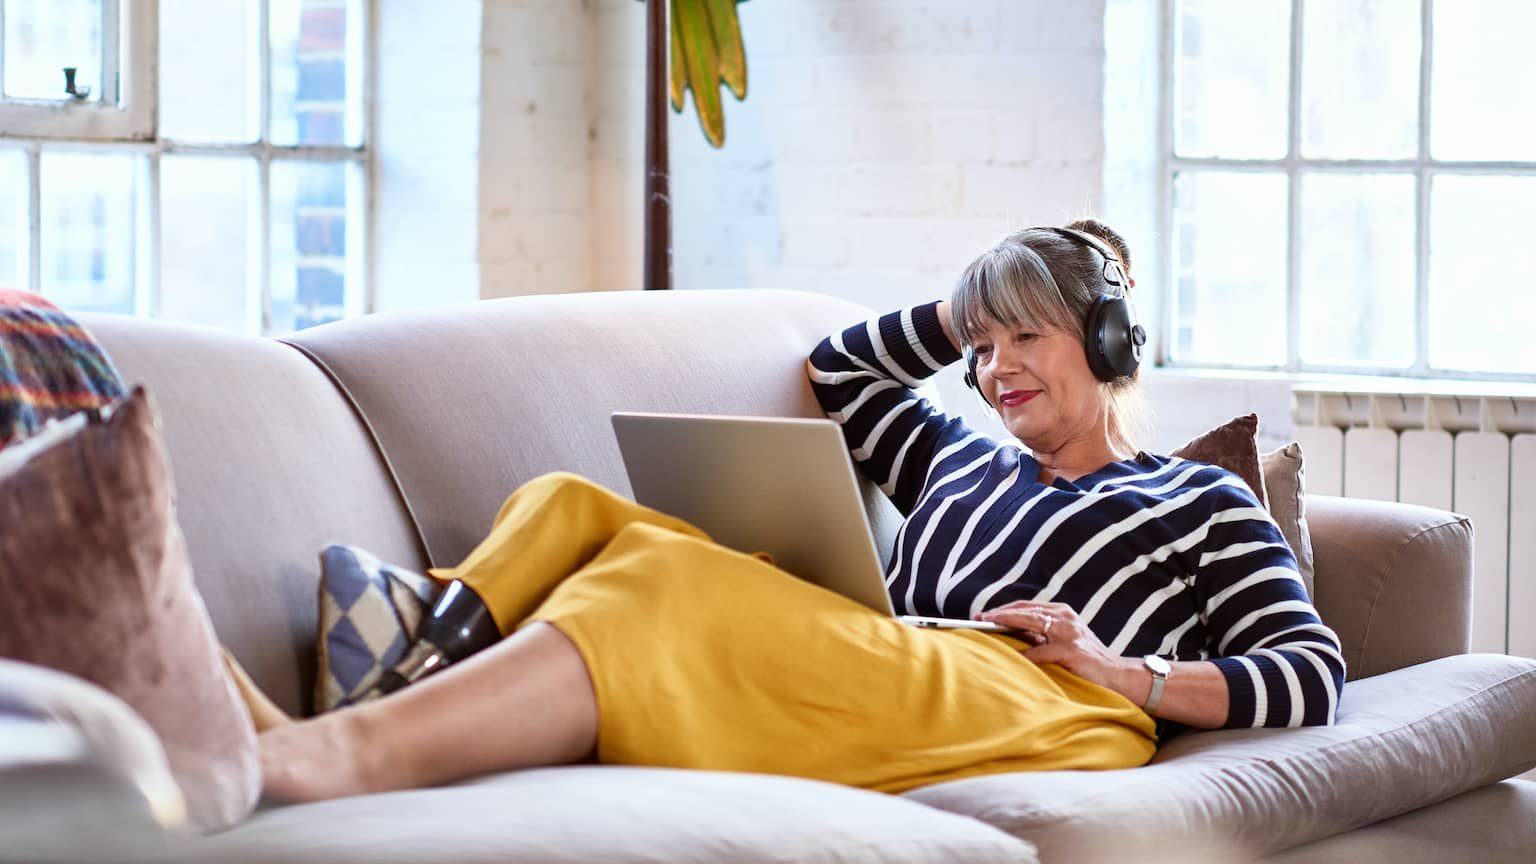 Woman with white hair wearing Bluetooth headphones and relaxing on a couch